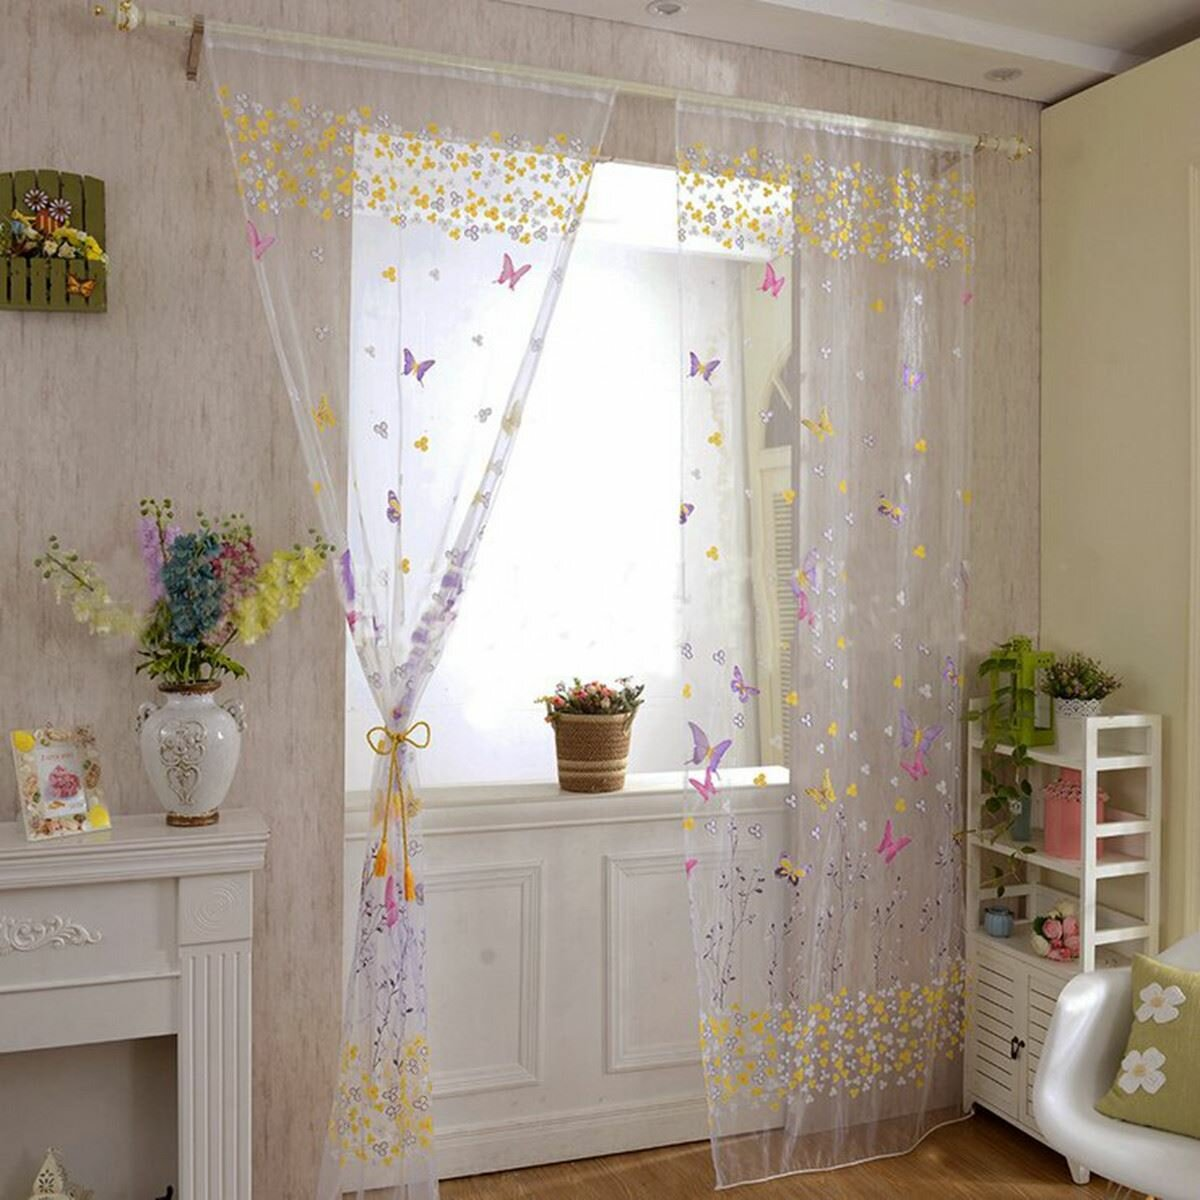 Curtain Cute Living Room Valances For Your Home Decorating Ideas Whereishemsworth Com